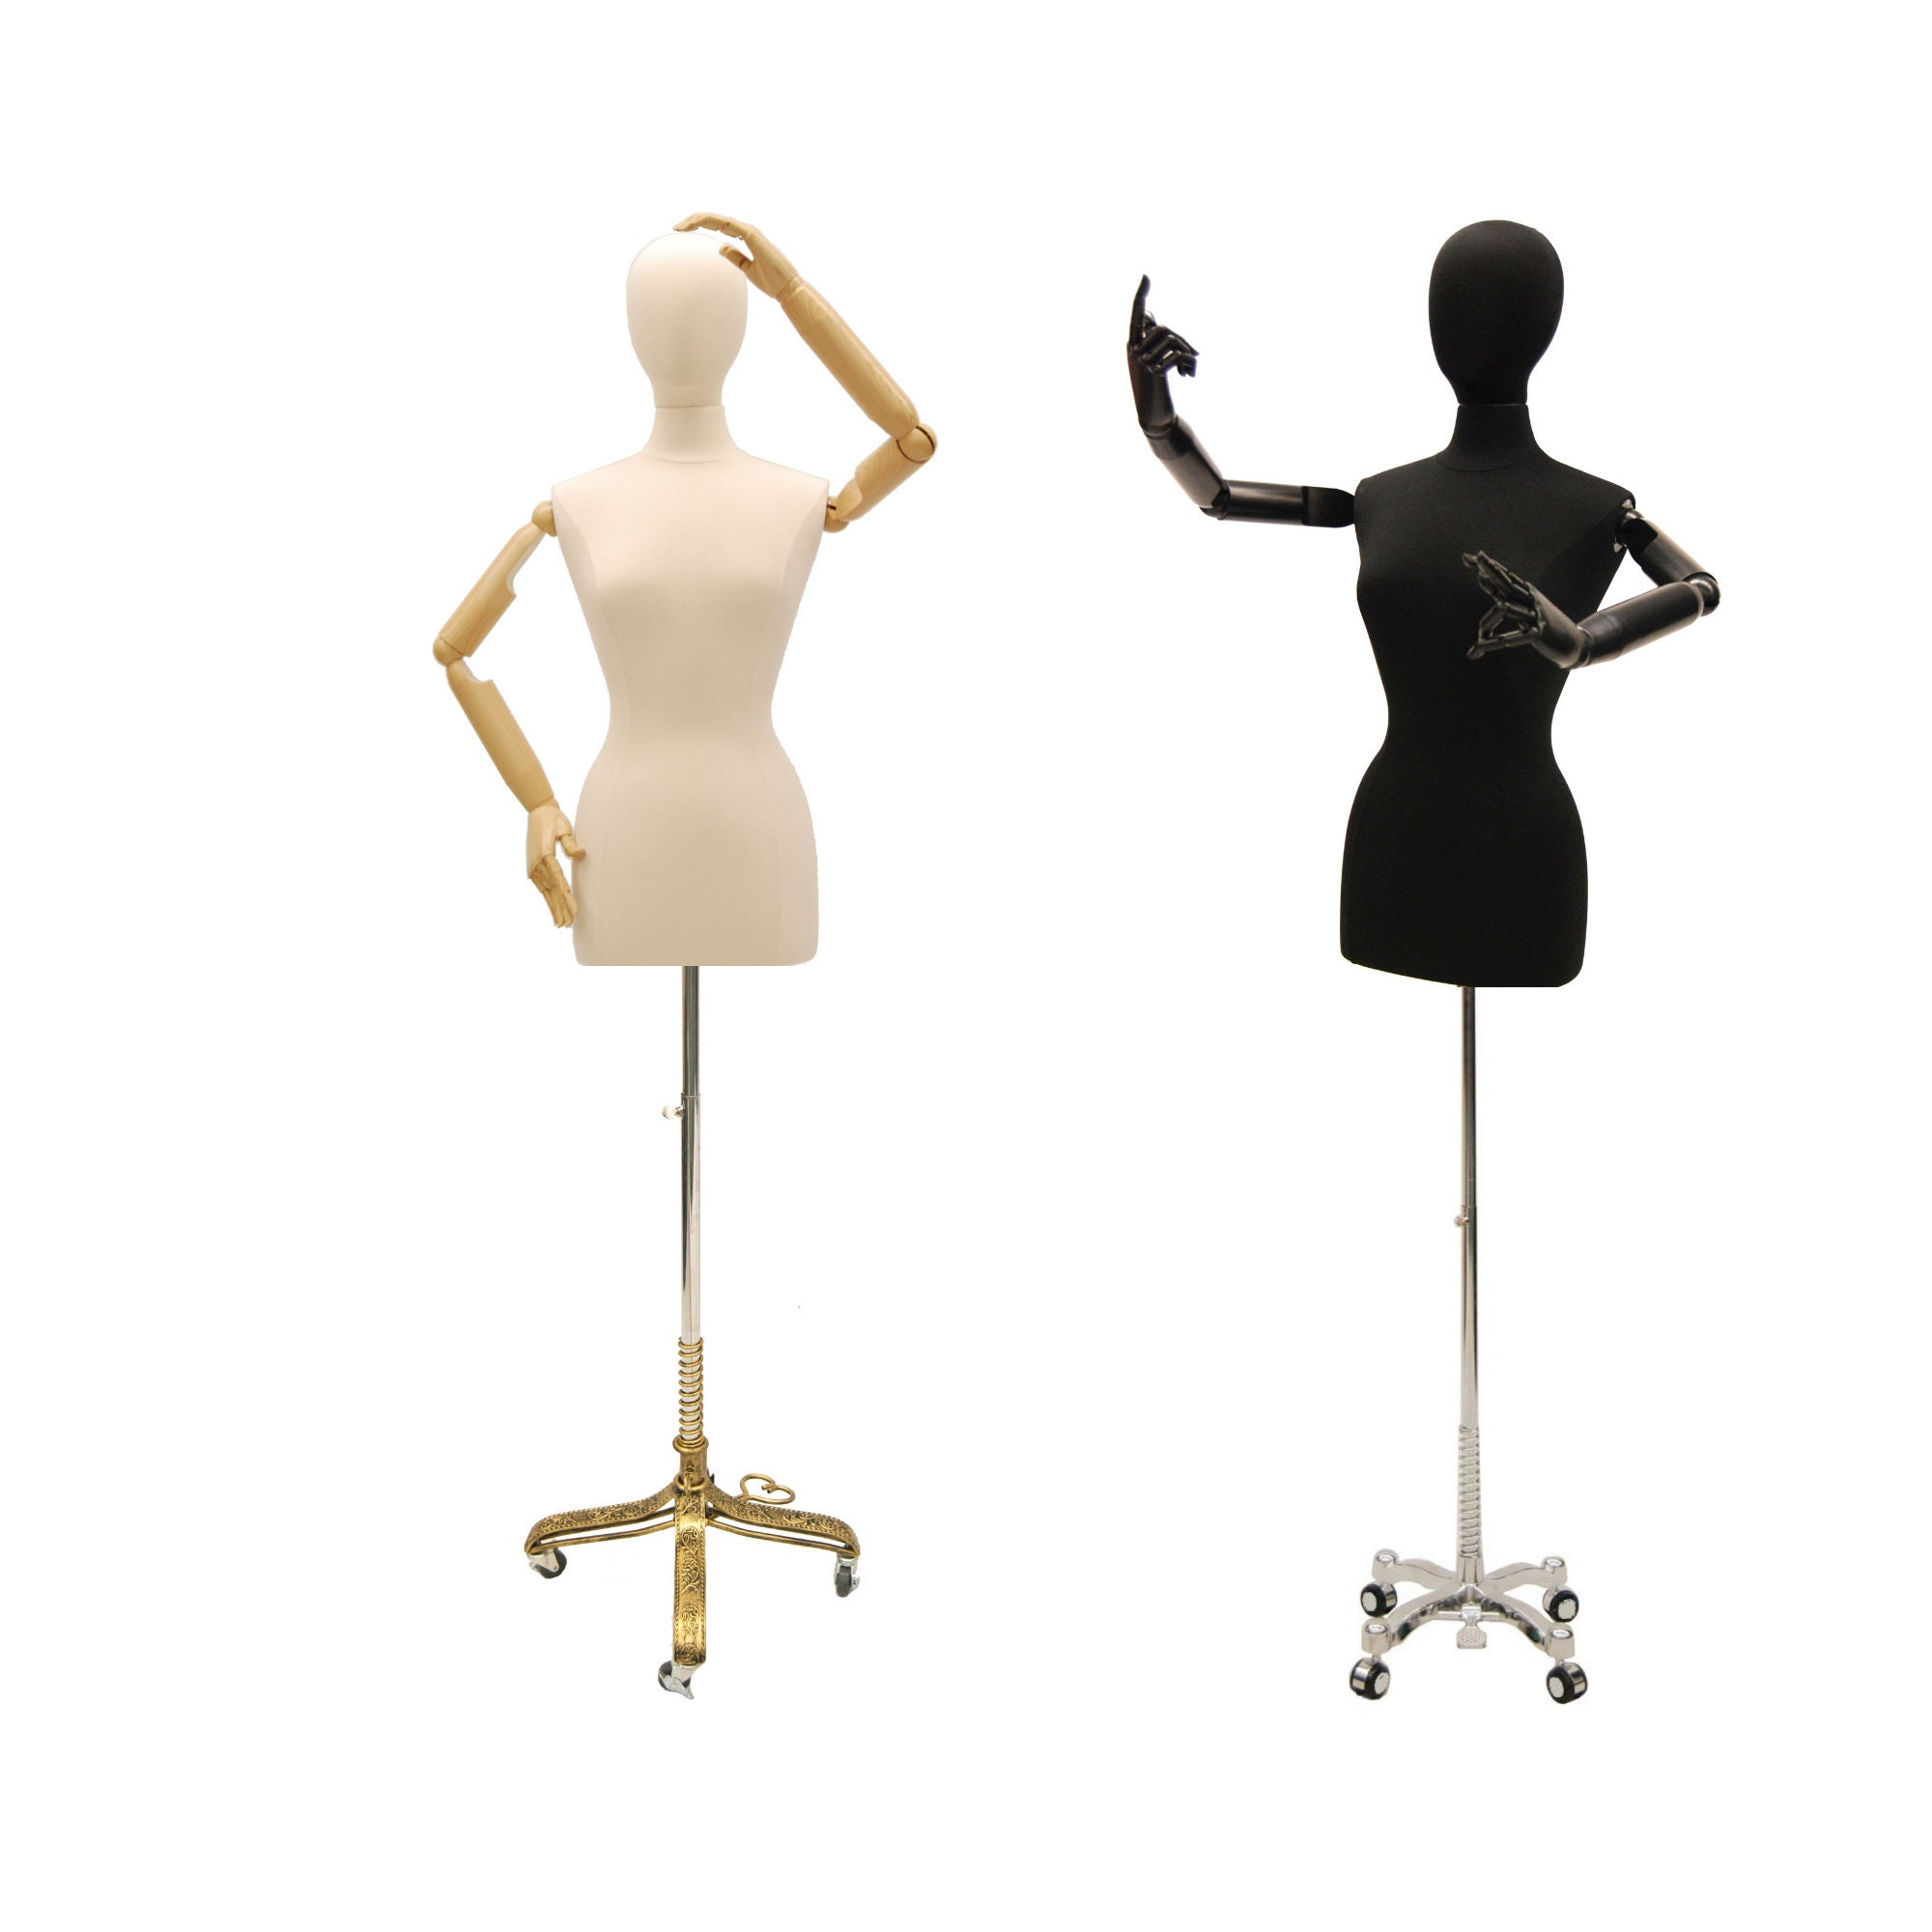 Mannequin Torso Display with Flexible Wooden Arms With Brushed Steel Stand